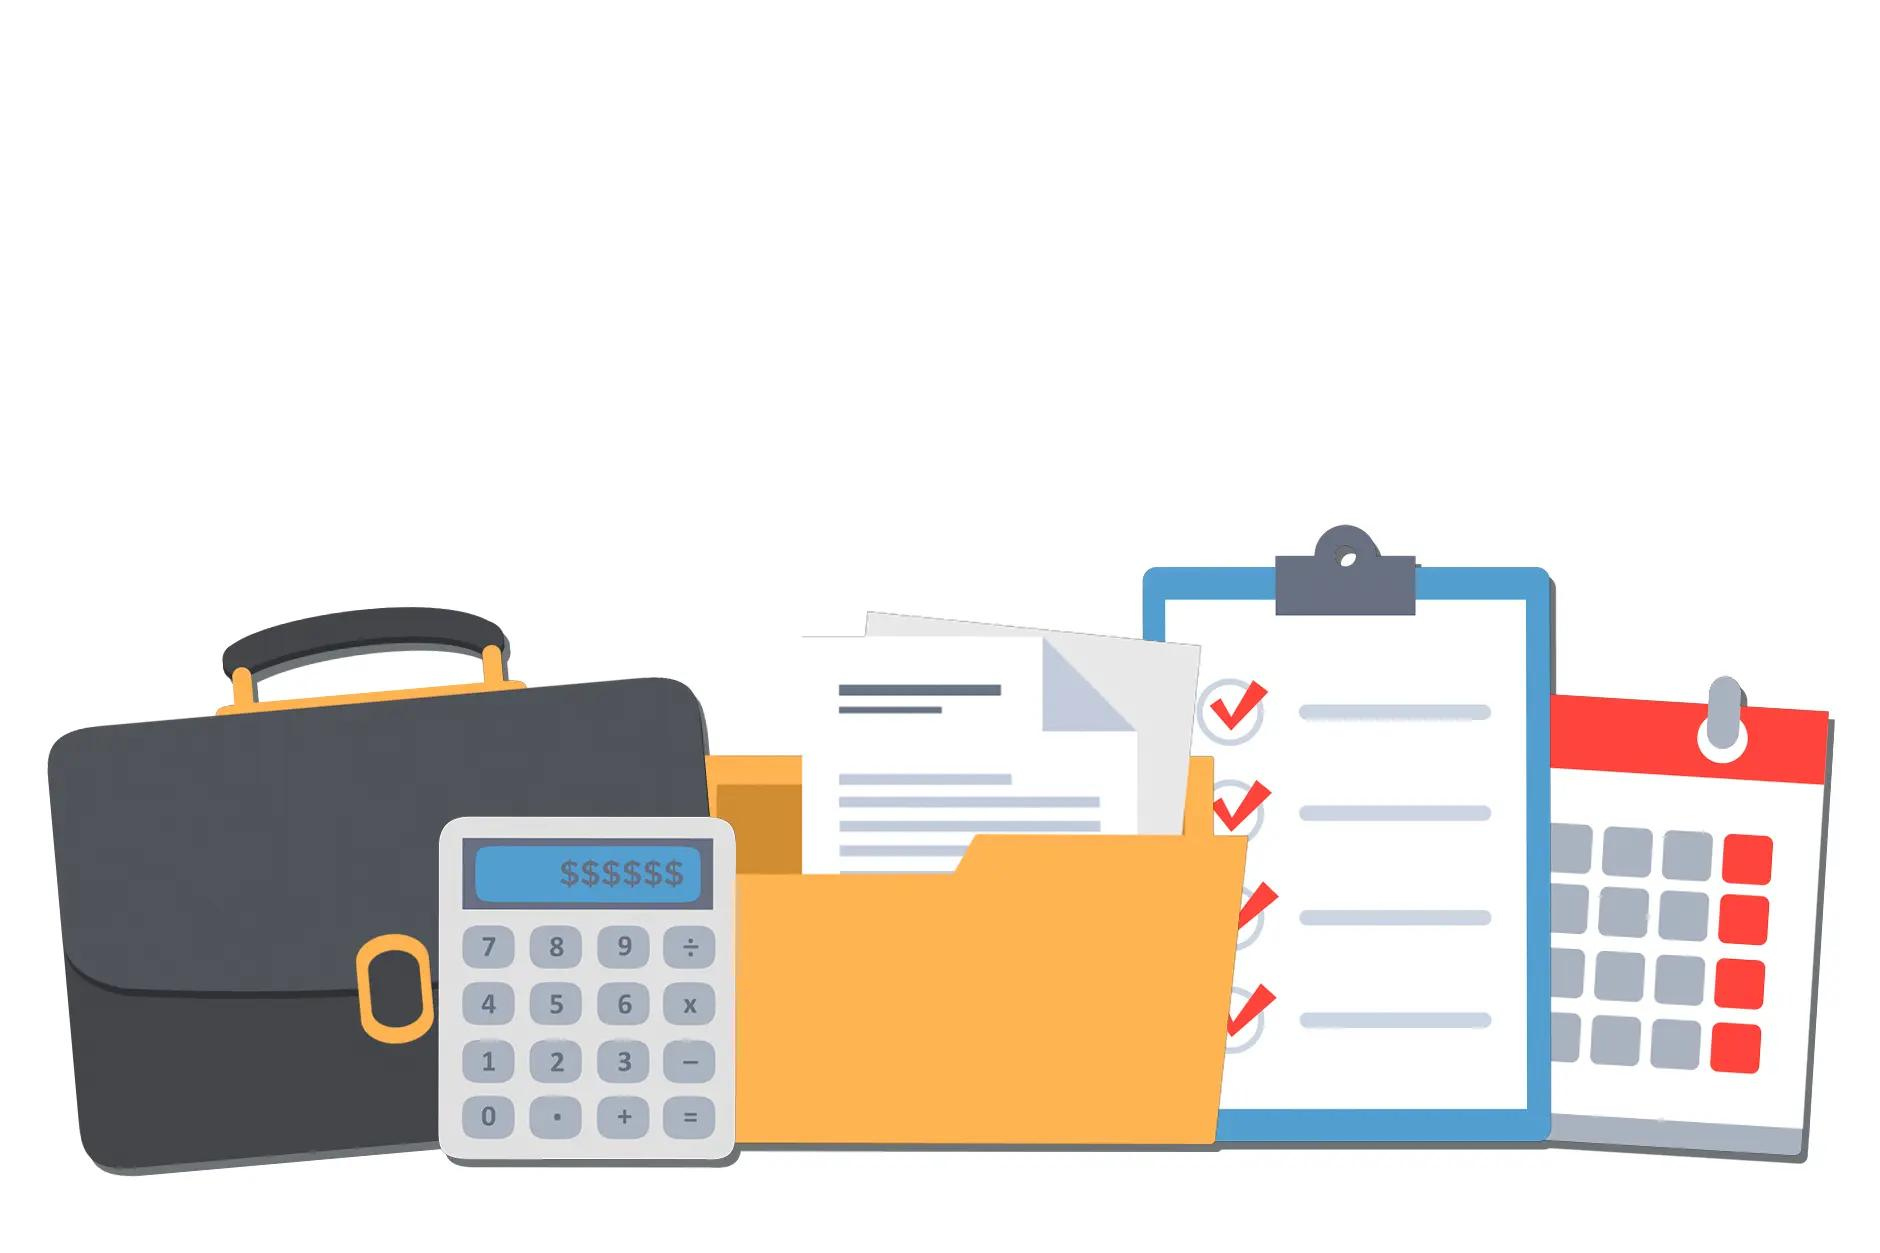 Text,Mobile Phone,Electronics,Product,Office Equipment